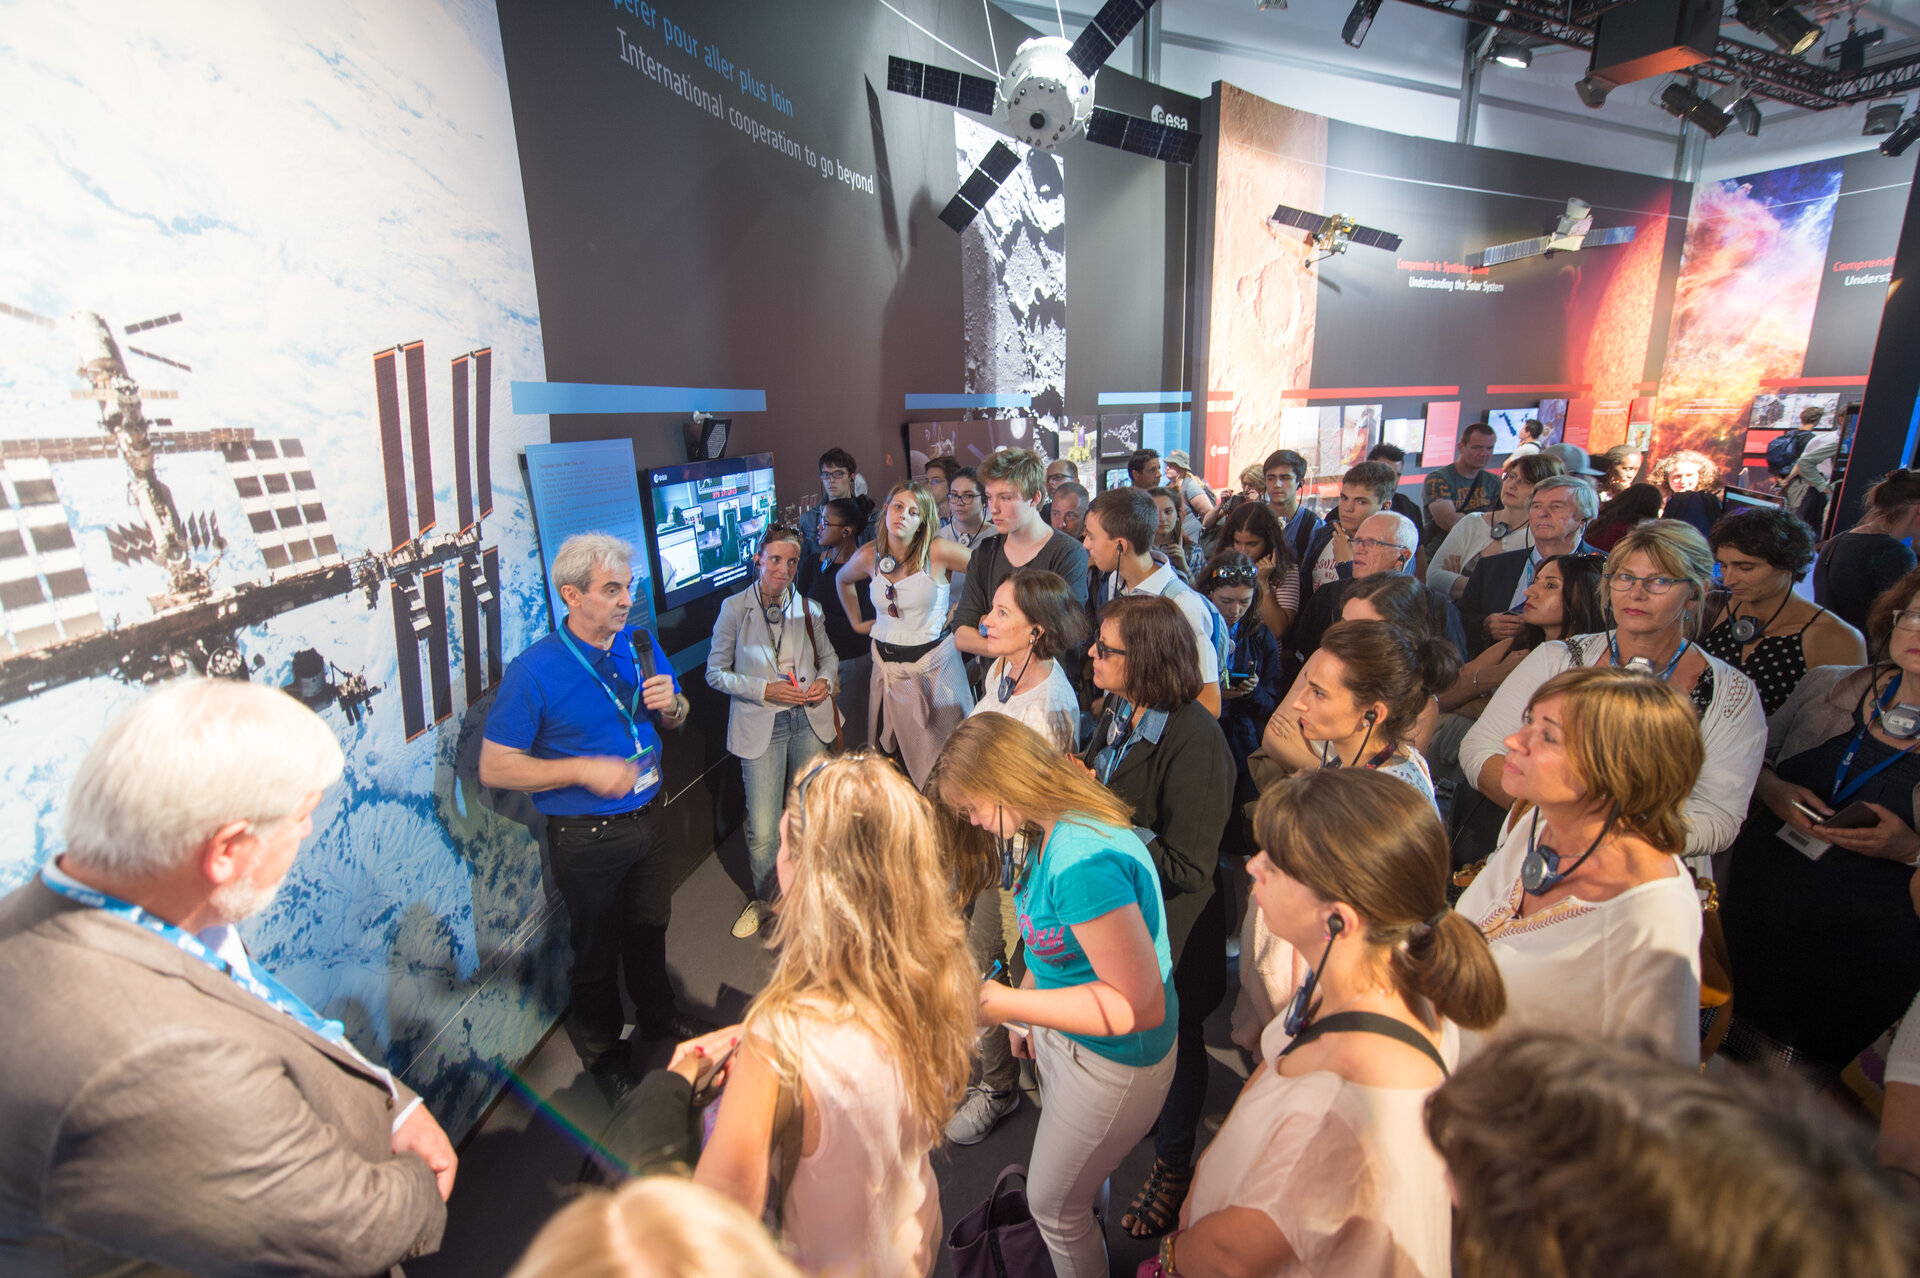 Leopold Eyharts shows ESA staffs the ESA Pavilion